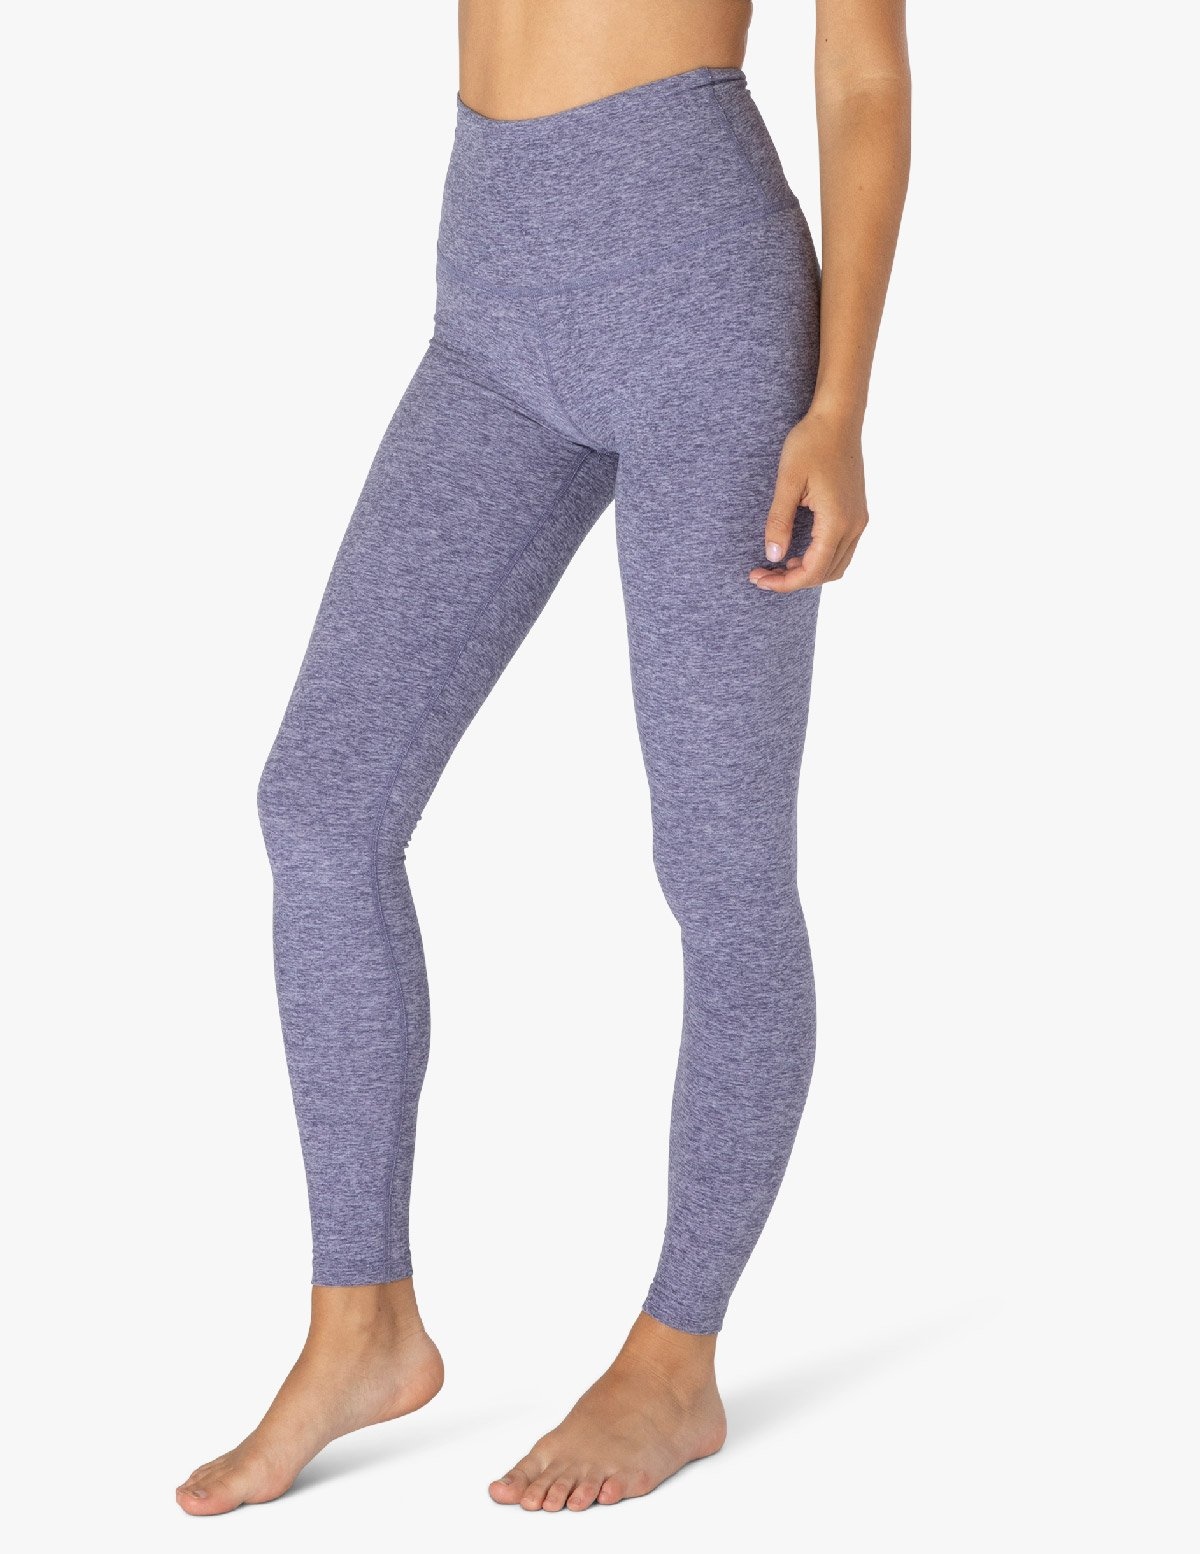 the most comfortable leggings from Beyond Yoga